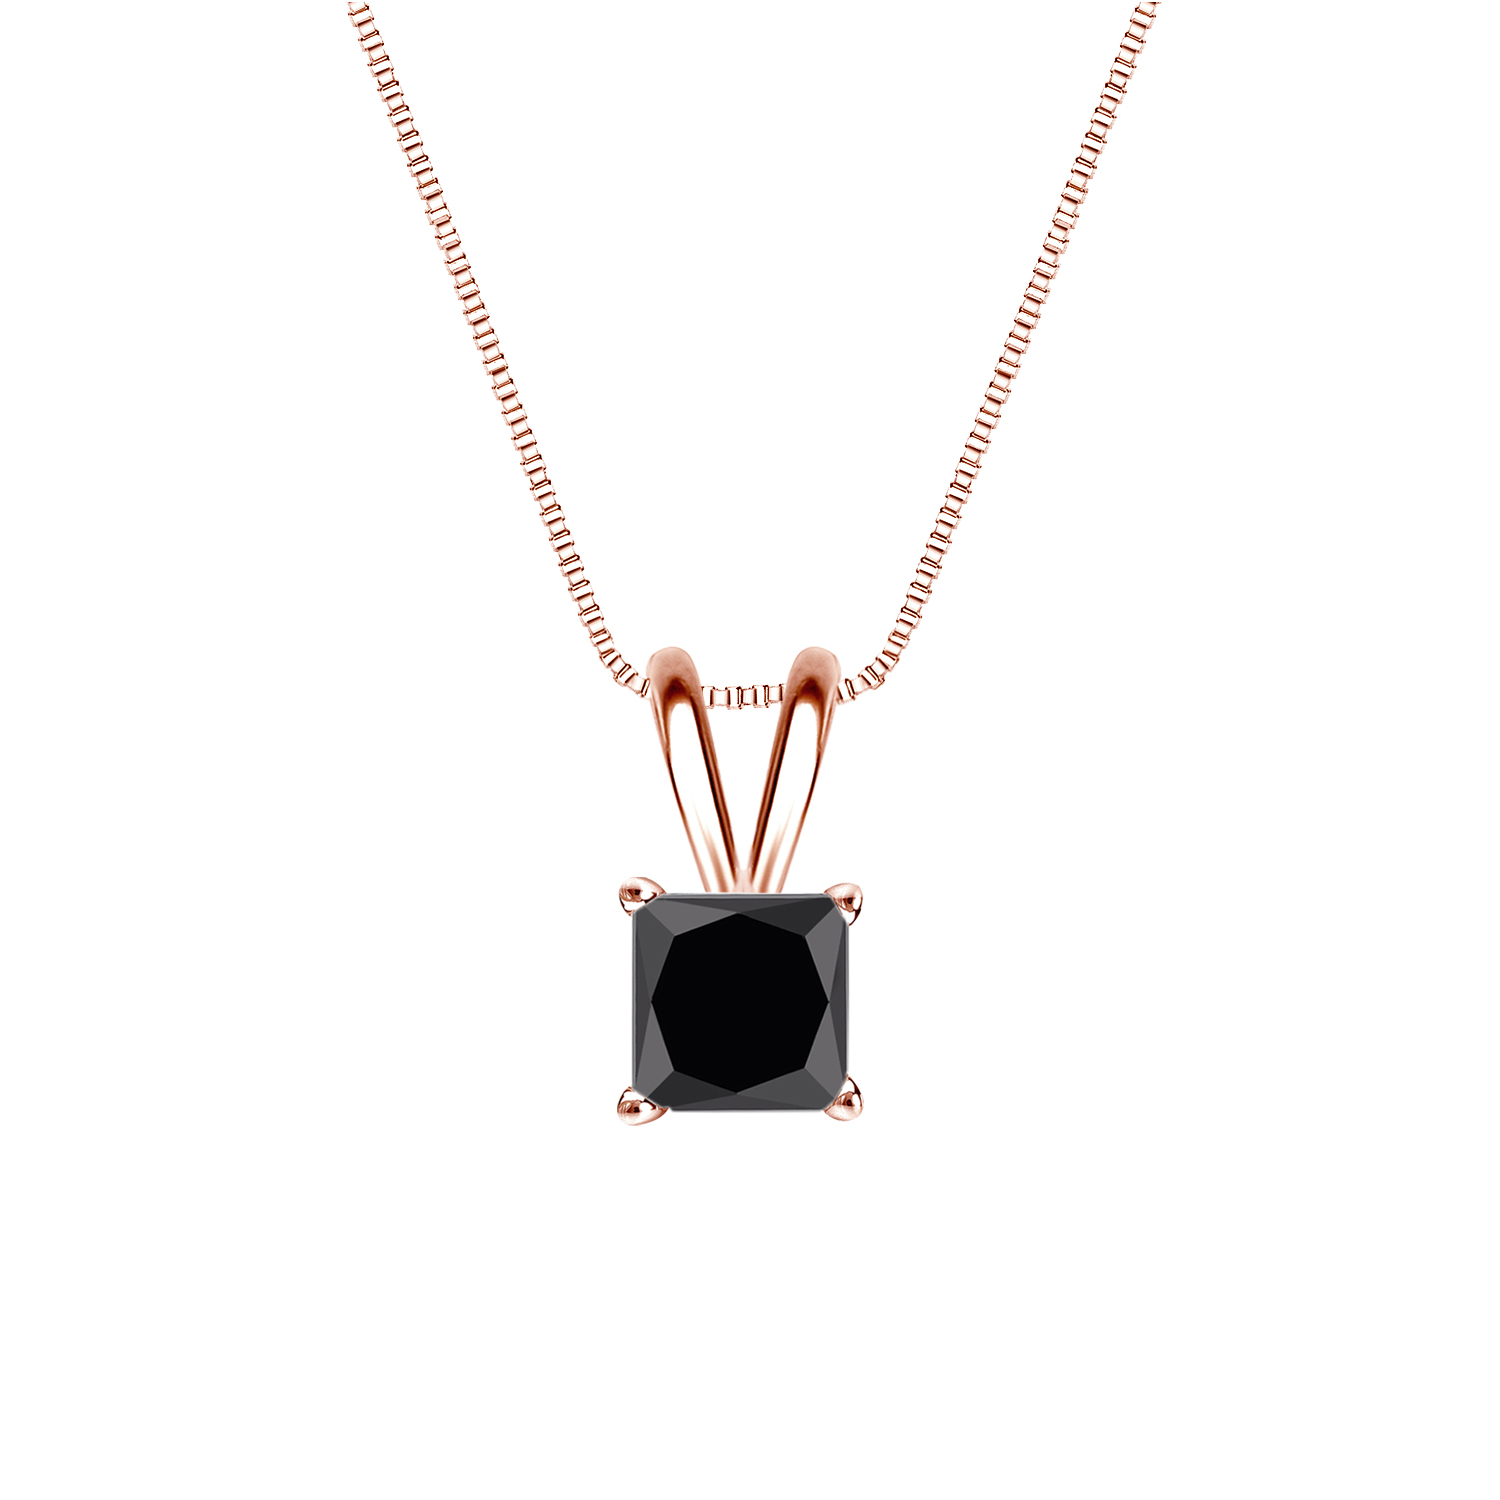 Certified 0.25 ct. tw. Princess Black Diamond Solitaire Pendant in 14k Rose Gold 4-Prong Basket (AAA)